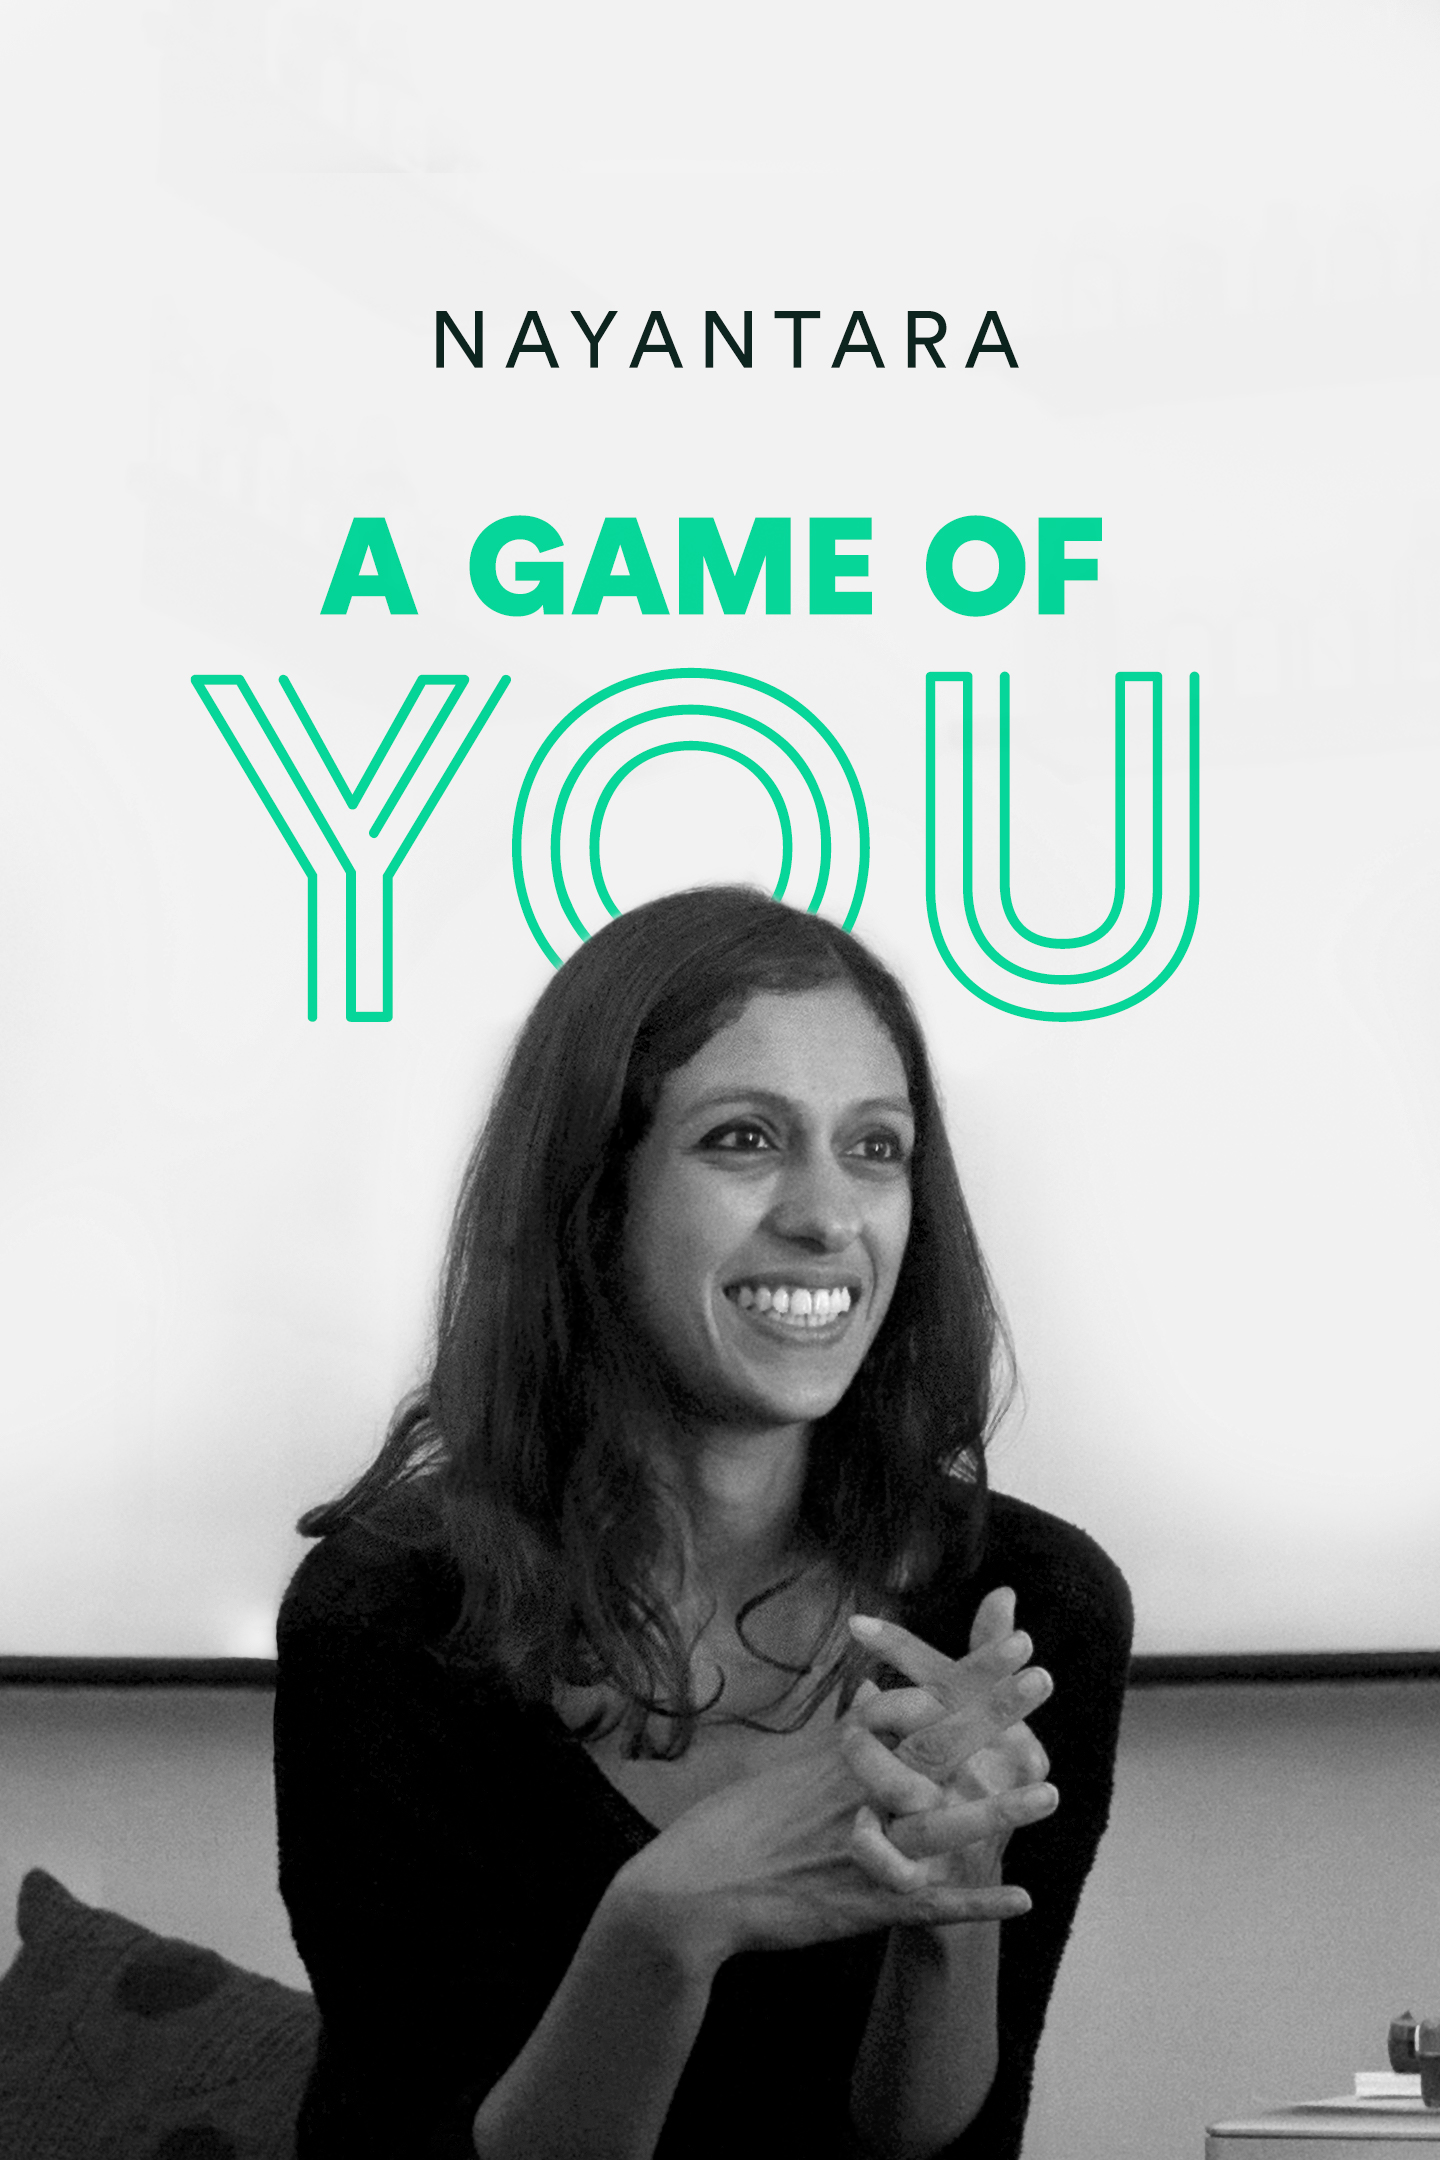 New Delhi – Nayantara, Game of You 5